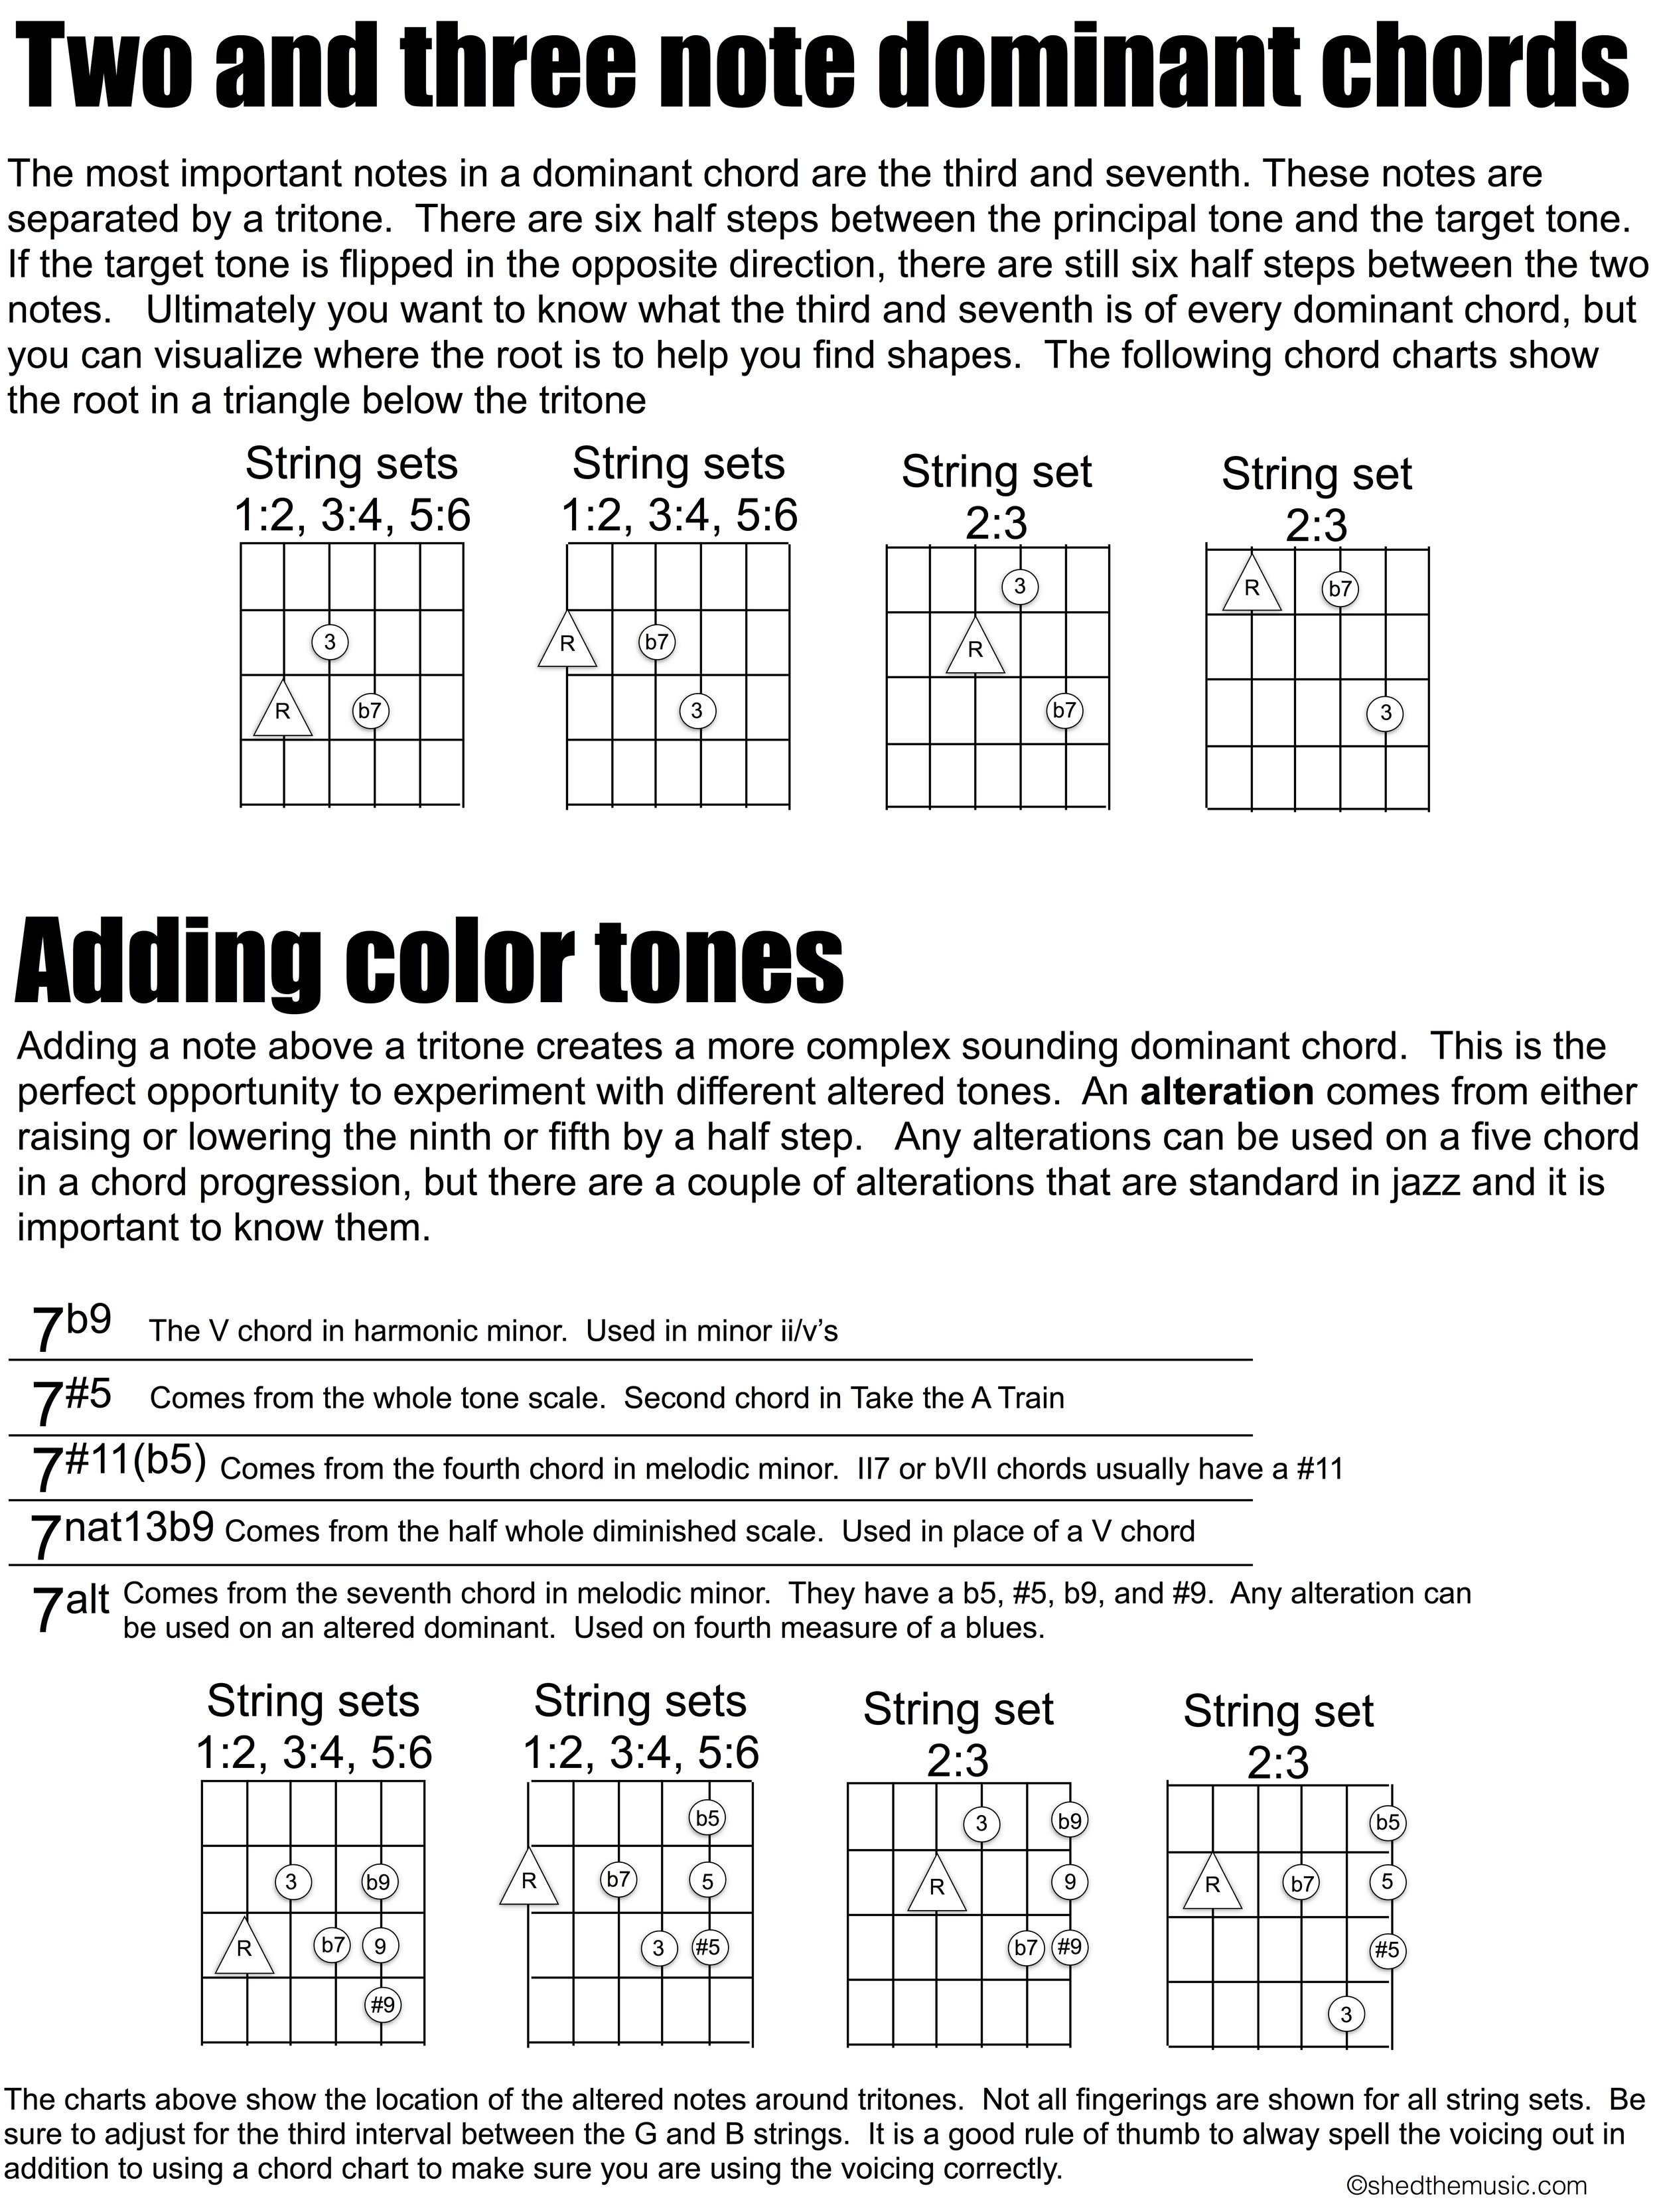 2 and 3 note dominant chords.jpg